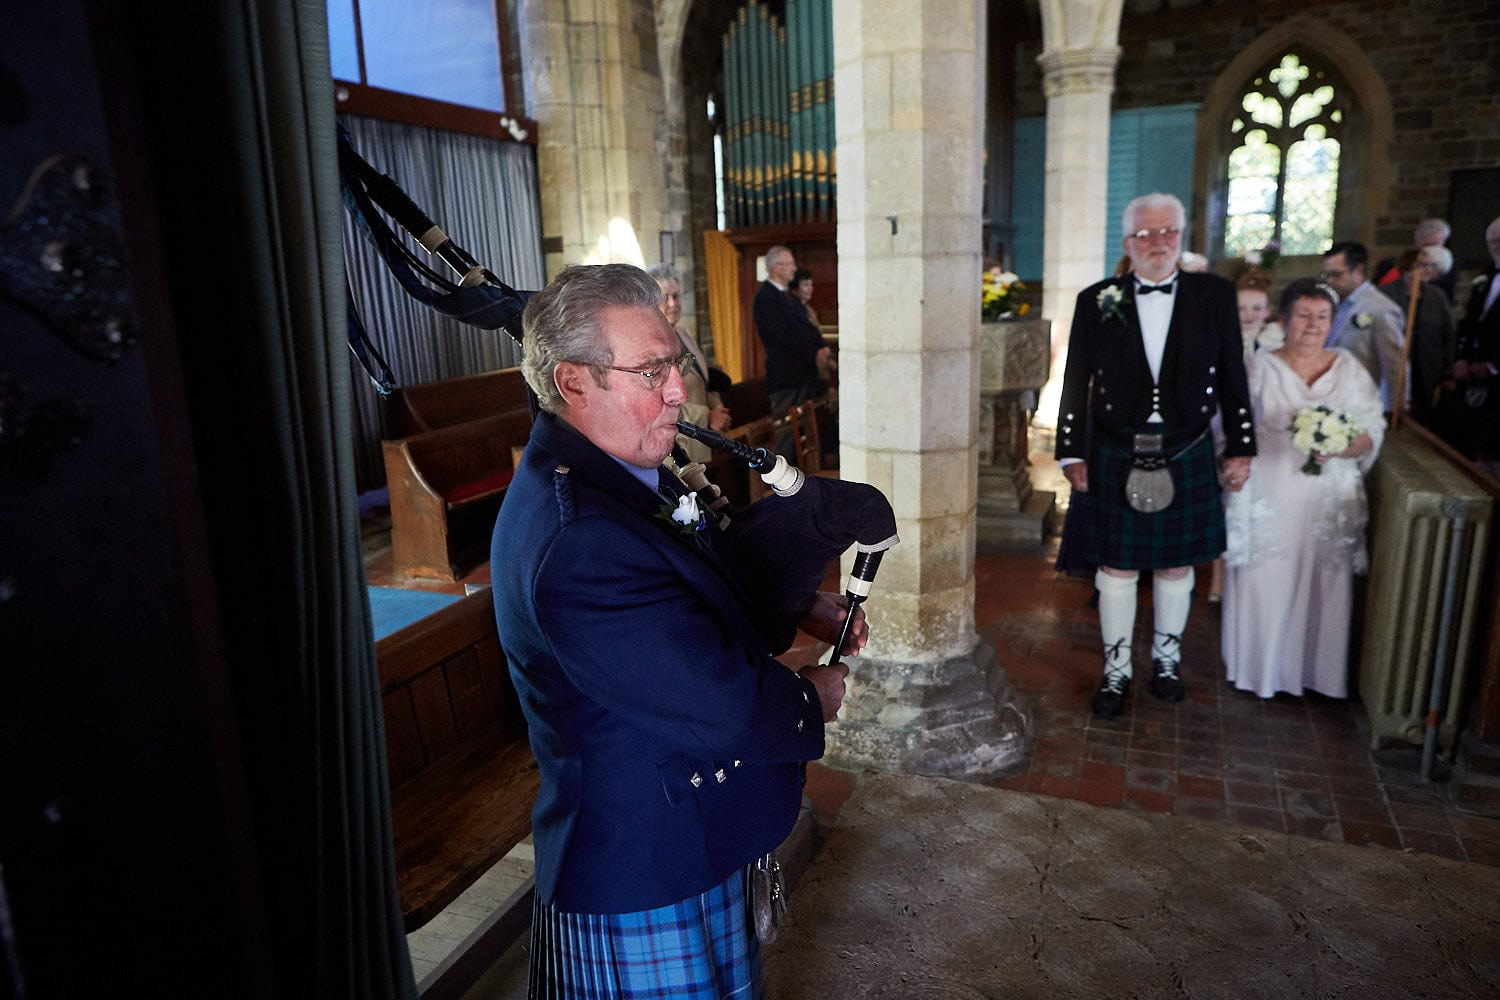 A piper plays a just married couple out of the church at Partney near Spilsby